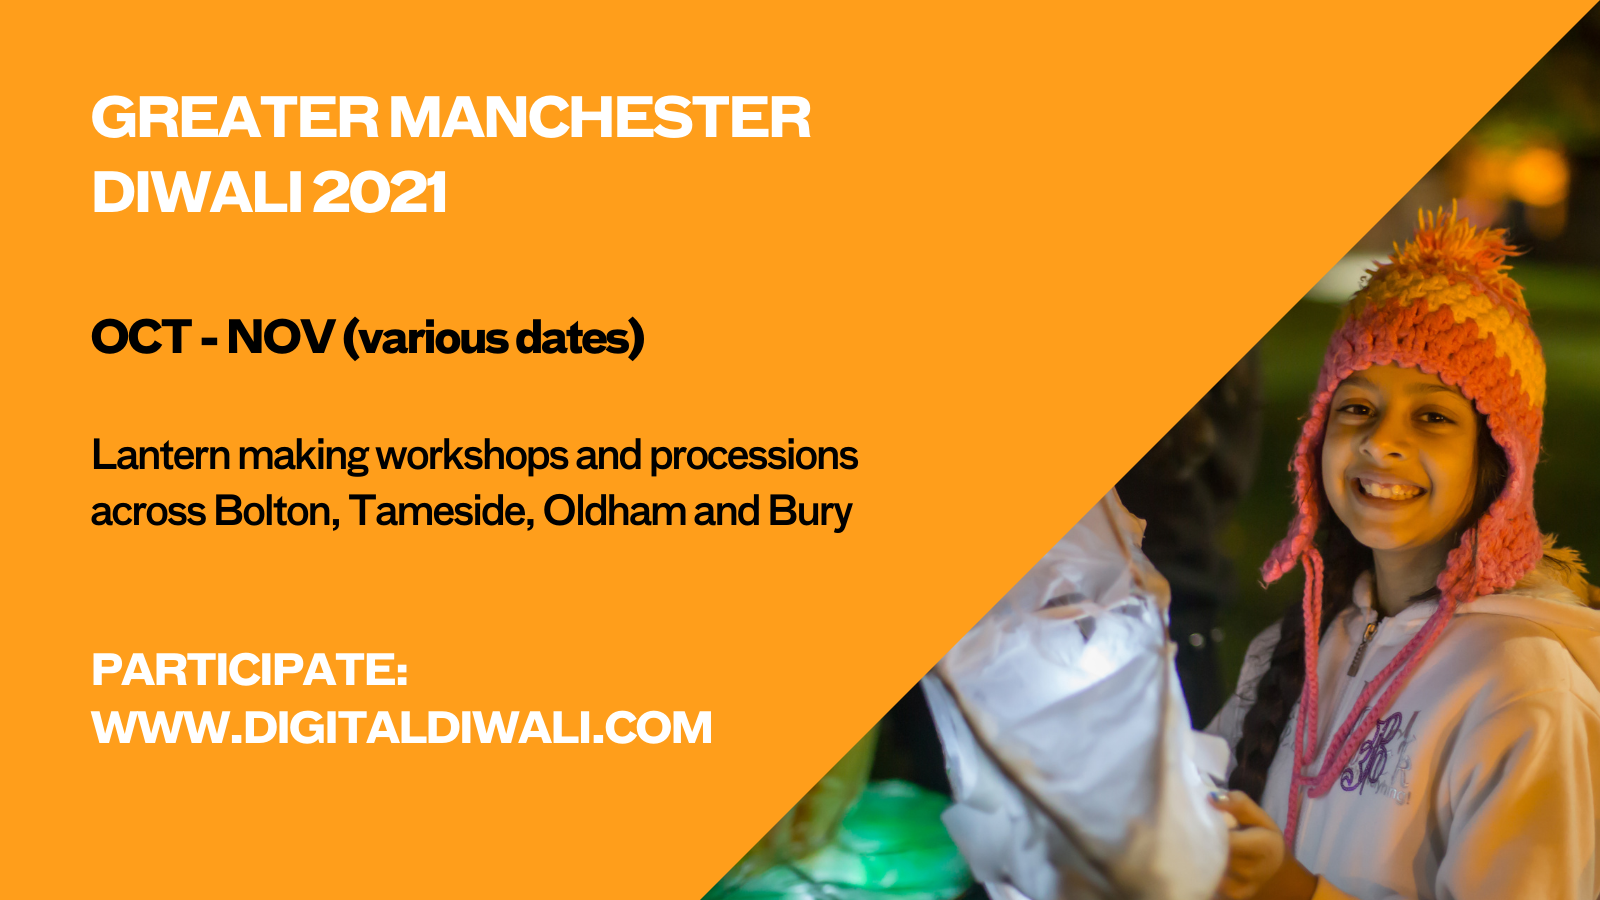 Greater Manchester Diwali 2021 (1)